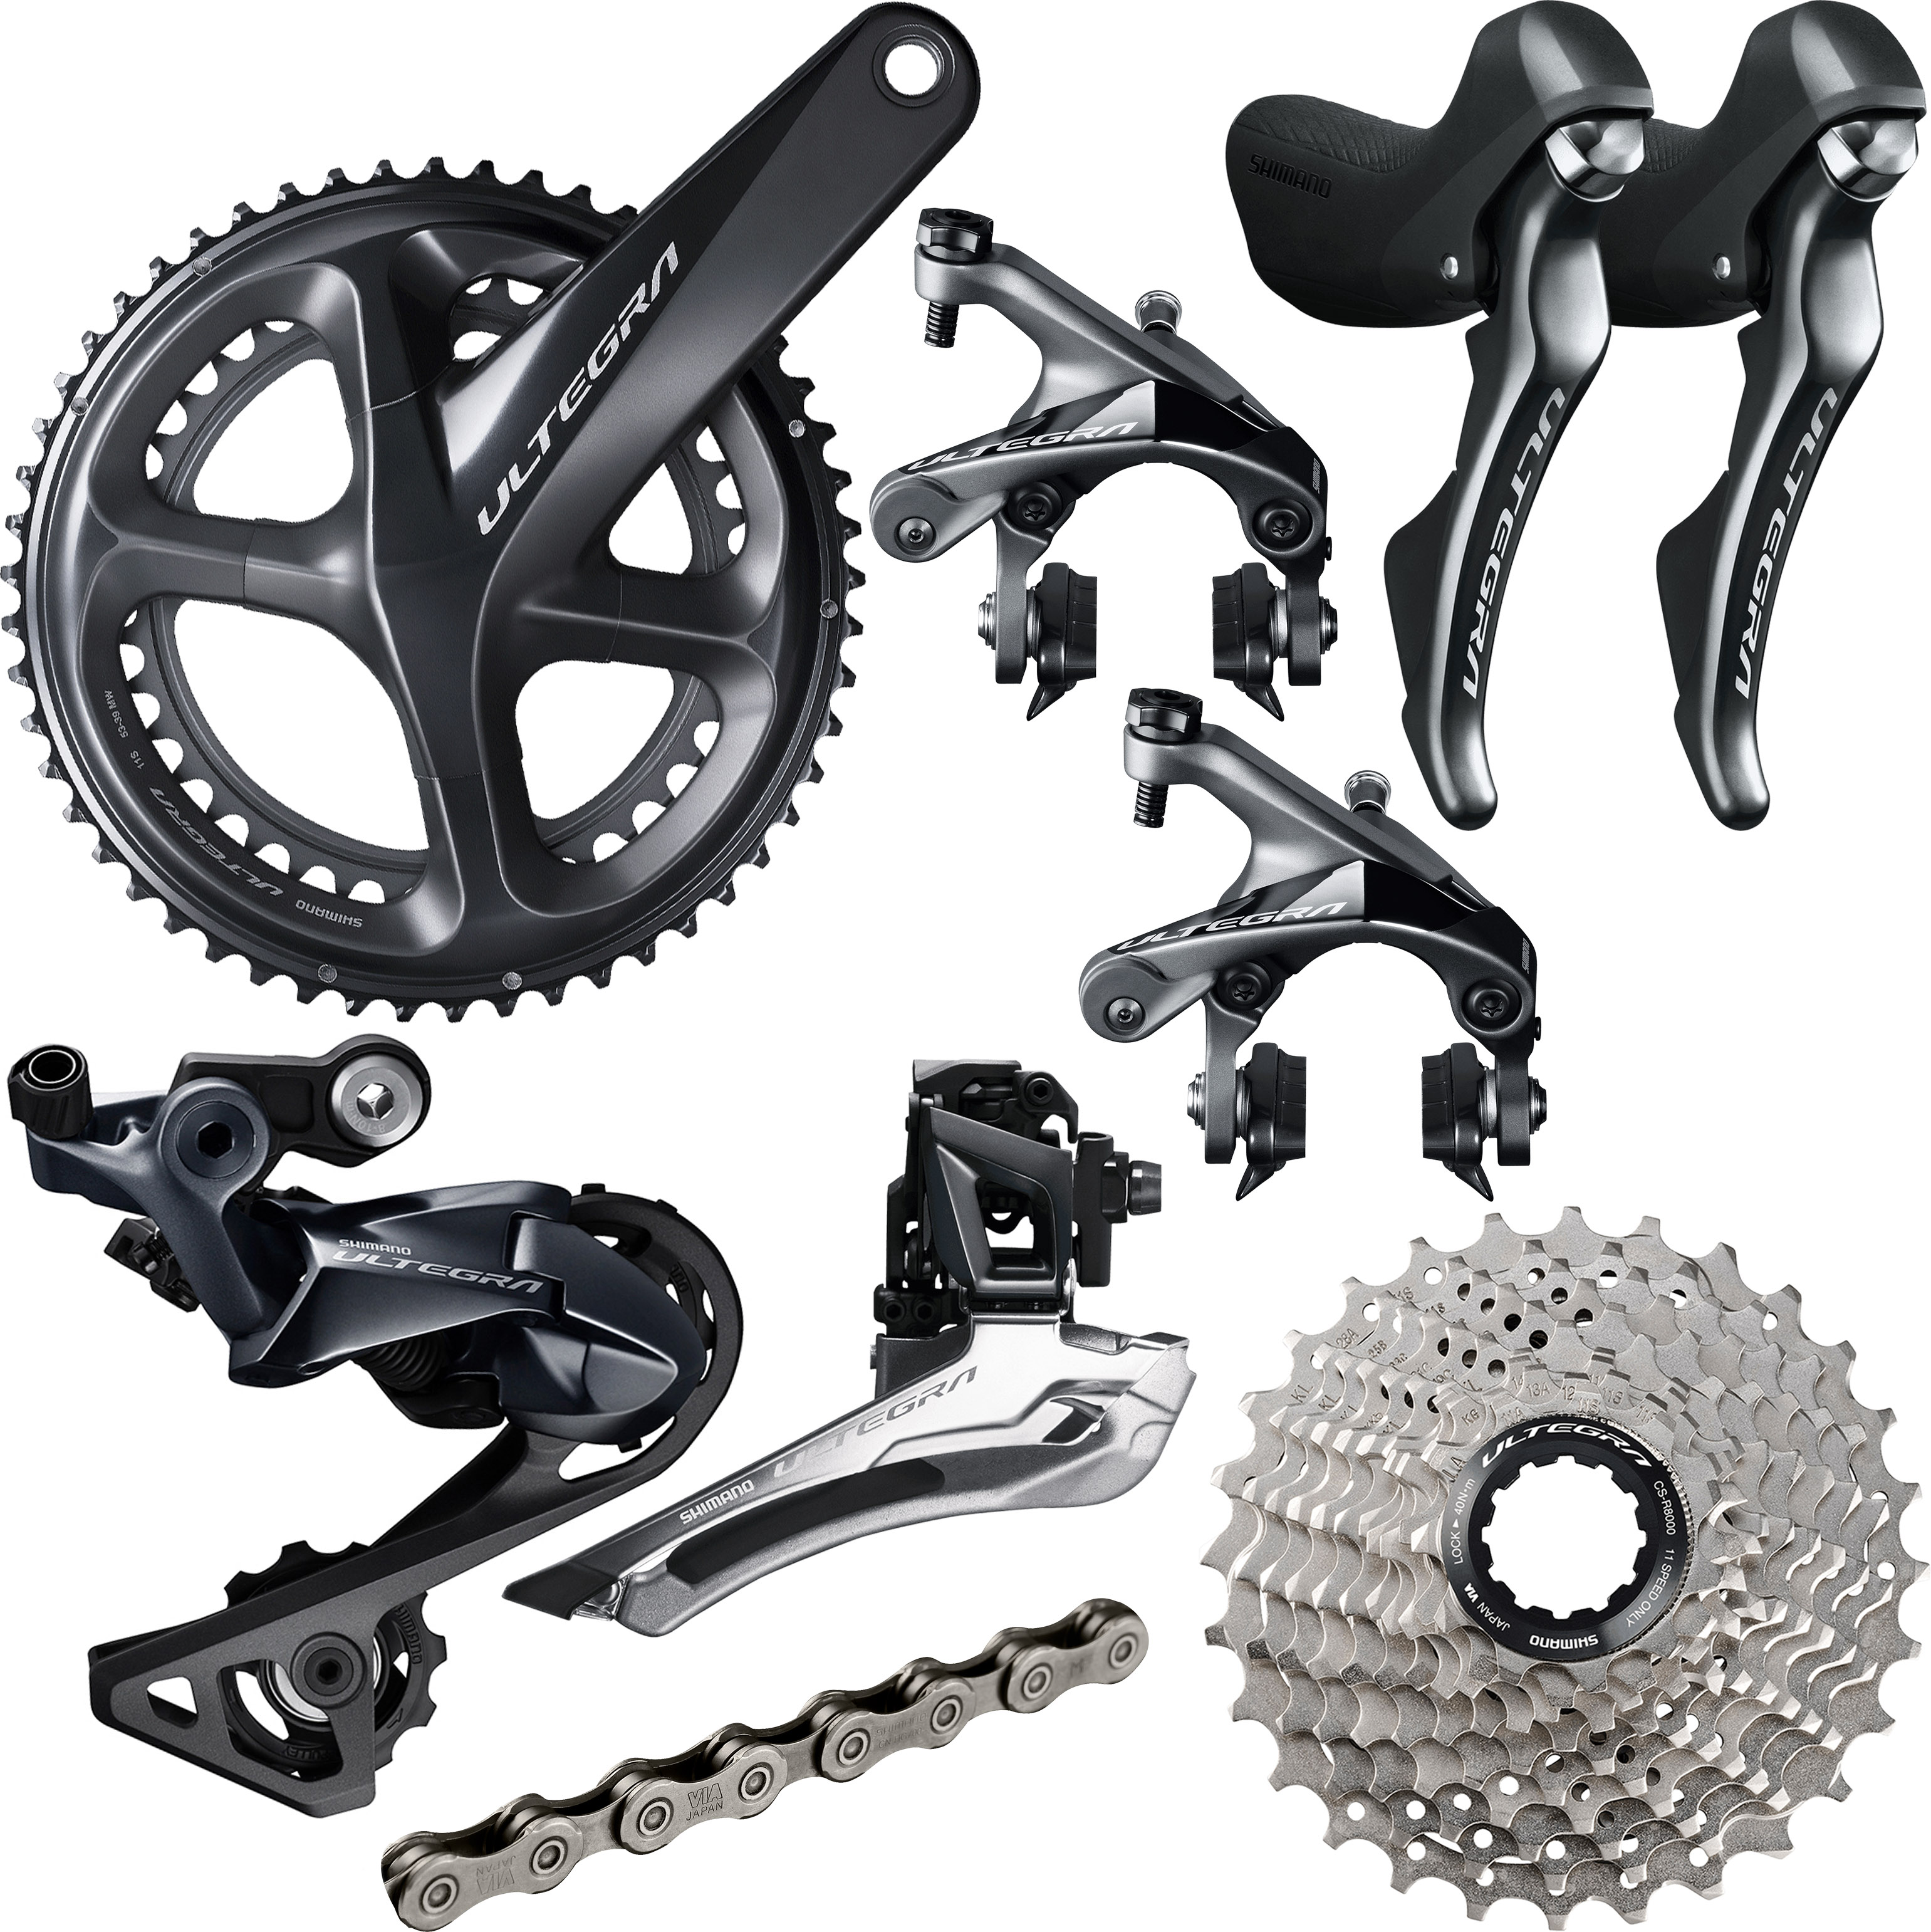 f08dbe86e02 Wiggle | Shimano Ultegra R8000 11 Speed Groupset SPECIAL | Groupsets